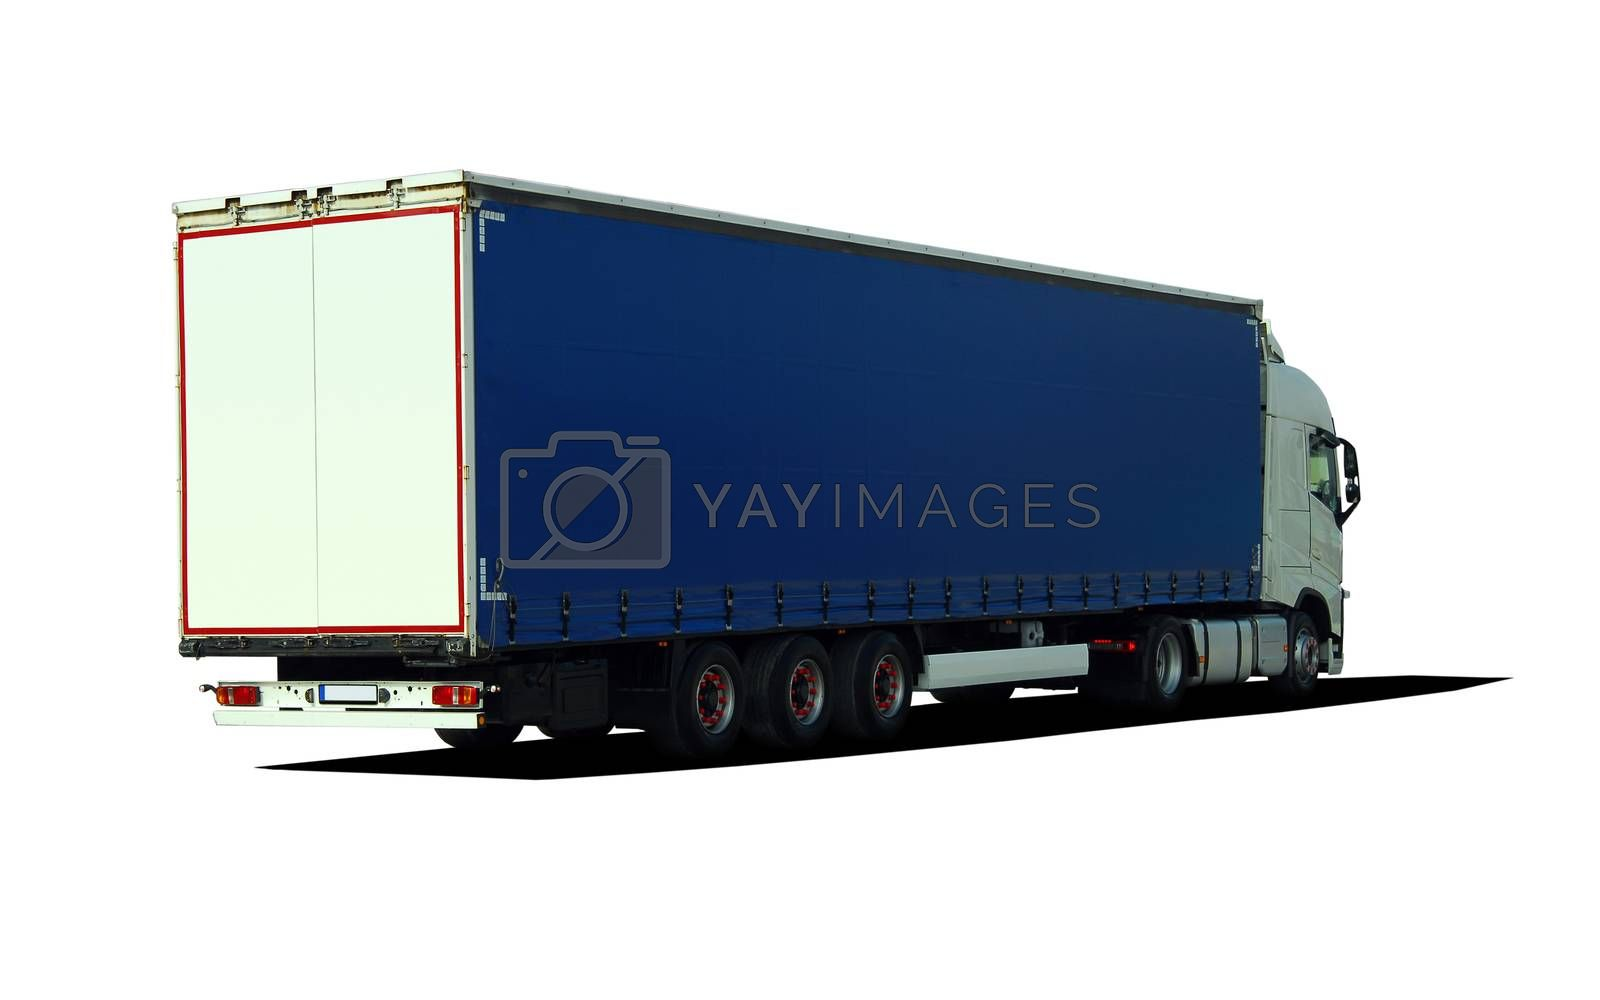 Royalty free image of Large truck with semi-trailer, rear view by aselsa